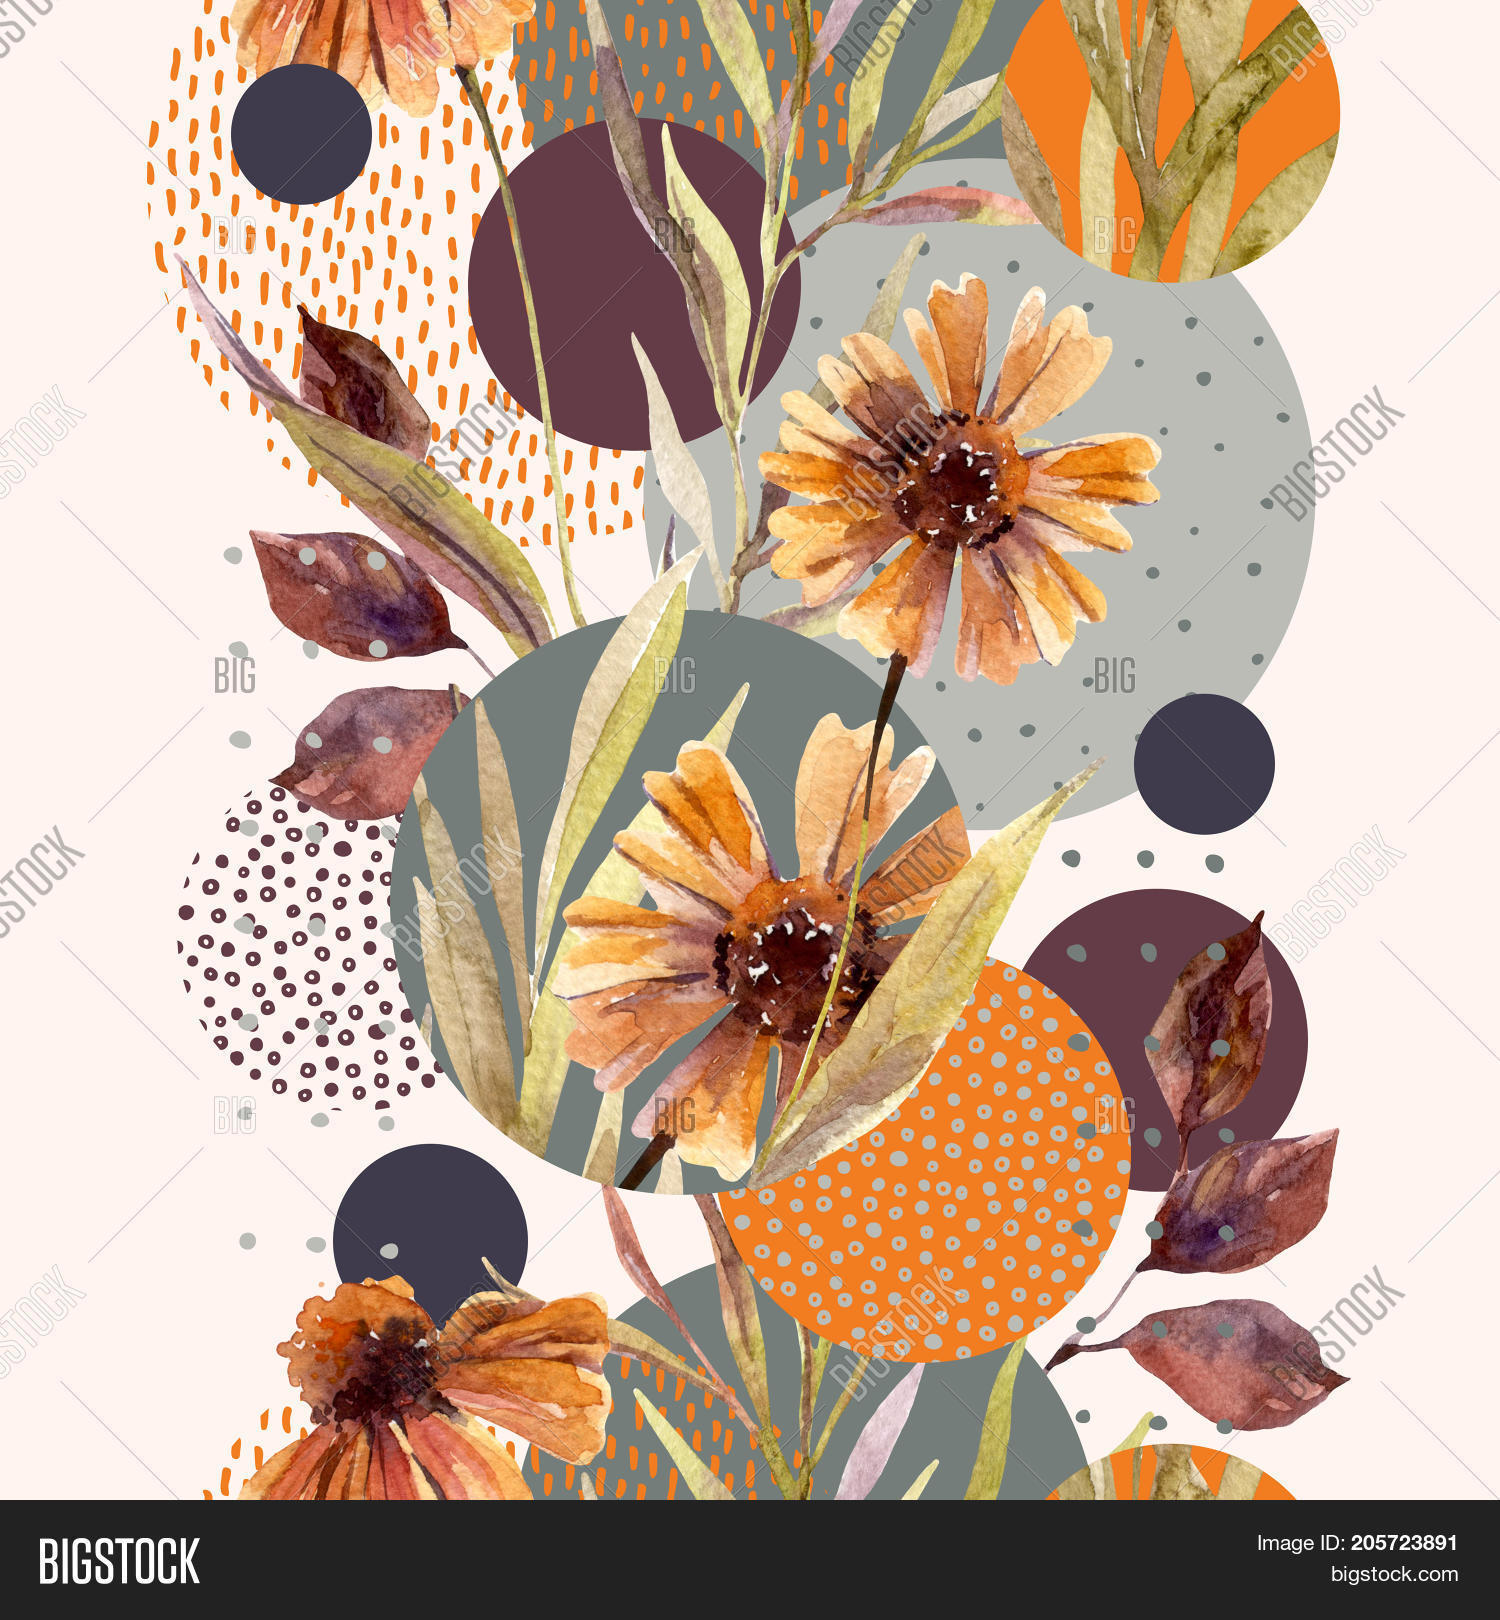 Abstract Floral Image Photo Free Trial Bigstock